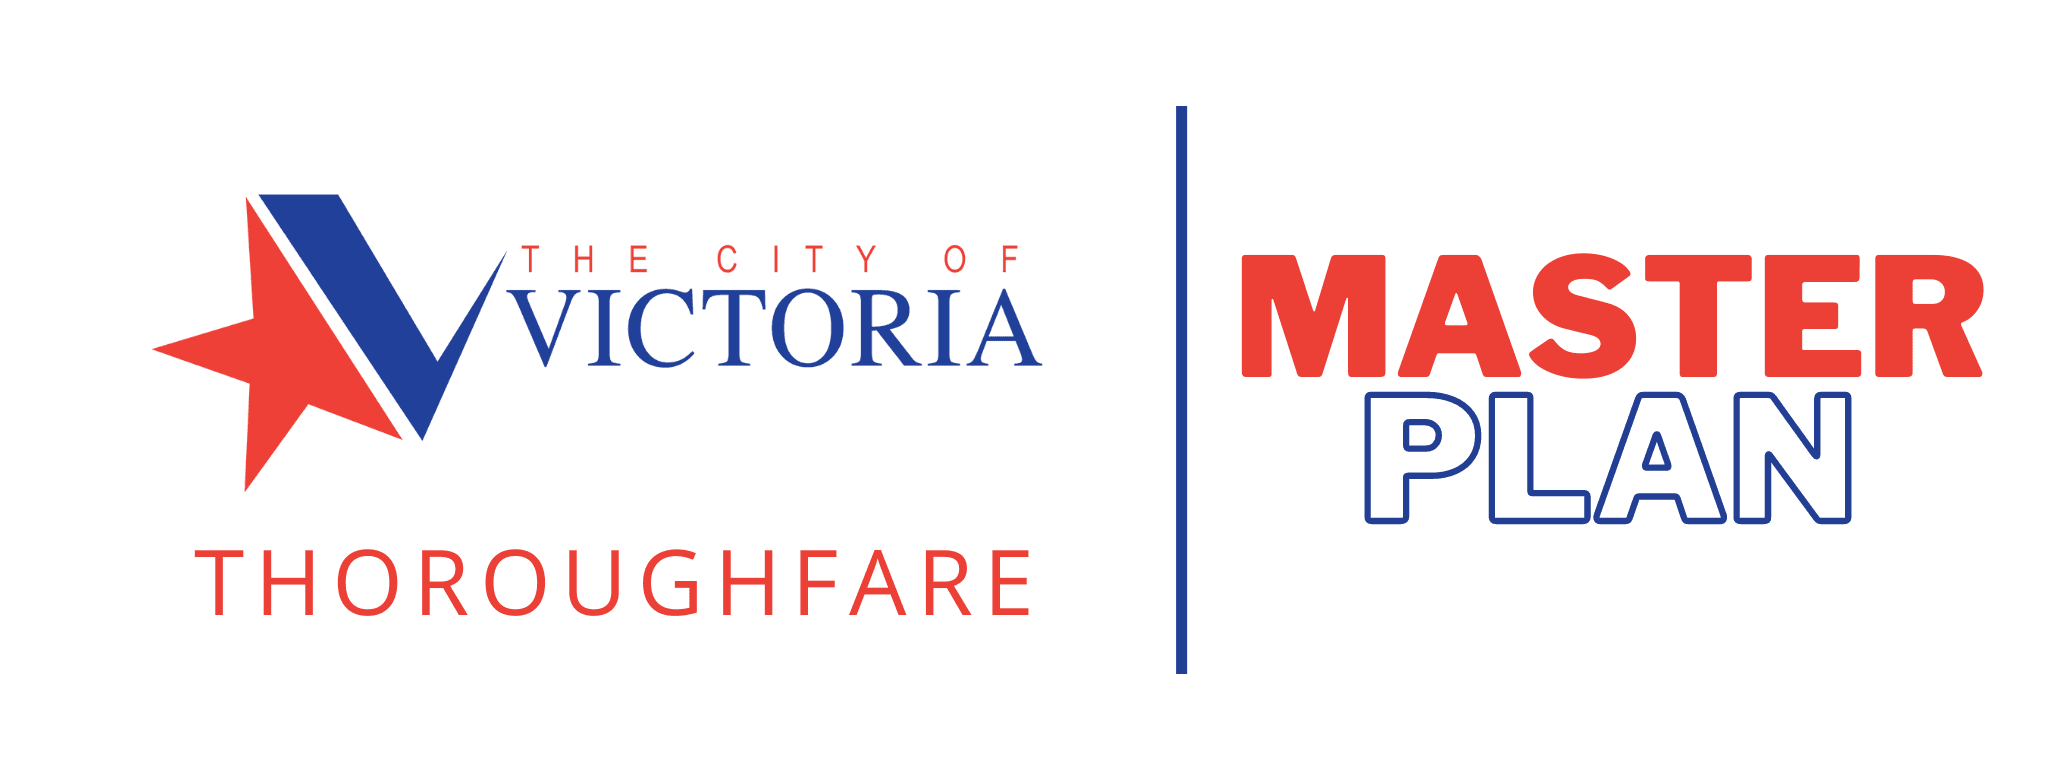 CITY OF VICTORIA THOROUGHFARE master plan